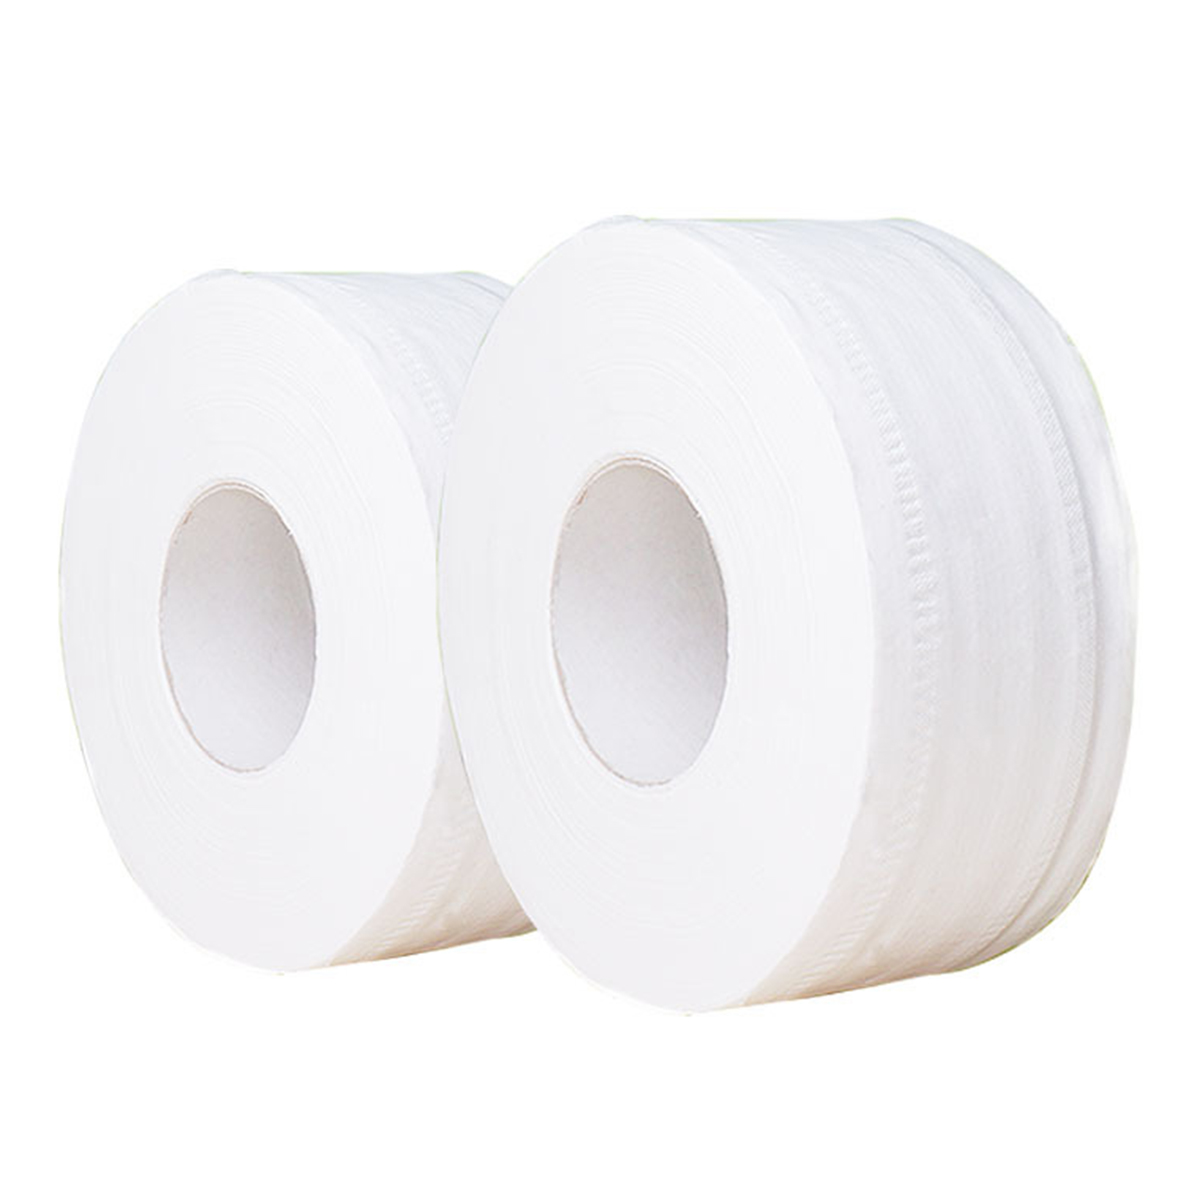 1 Roll Of 8.5inch 450g Toilet Paper Jumbo Roll Toilet Paper 3-ply Wood Pulp Roll Paper No Fluorescent Agent No Harmful Additives